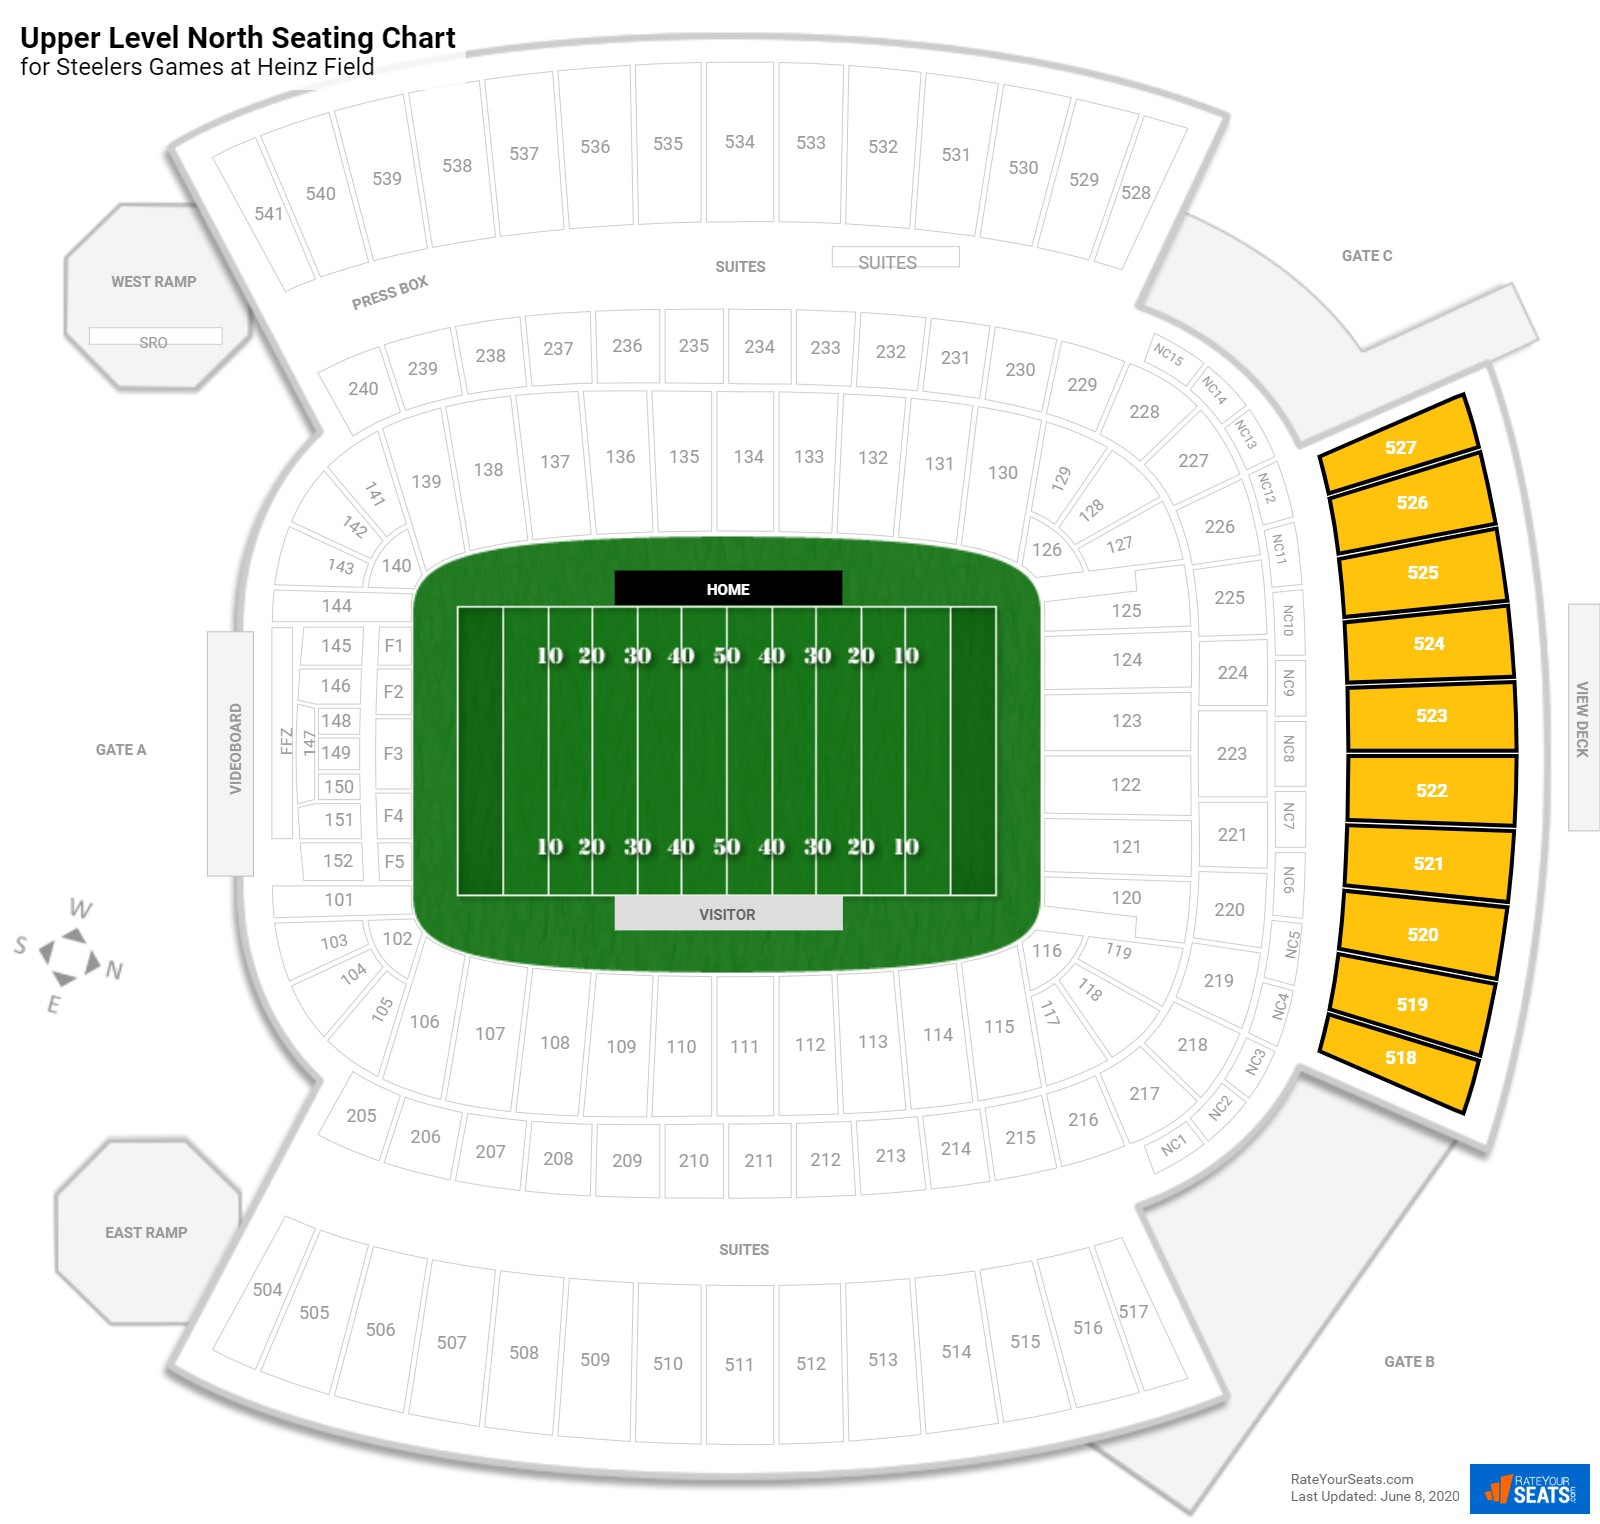 Heinz Field Upper Level North seating chart